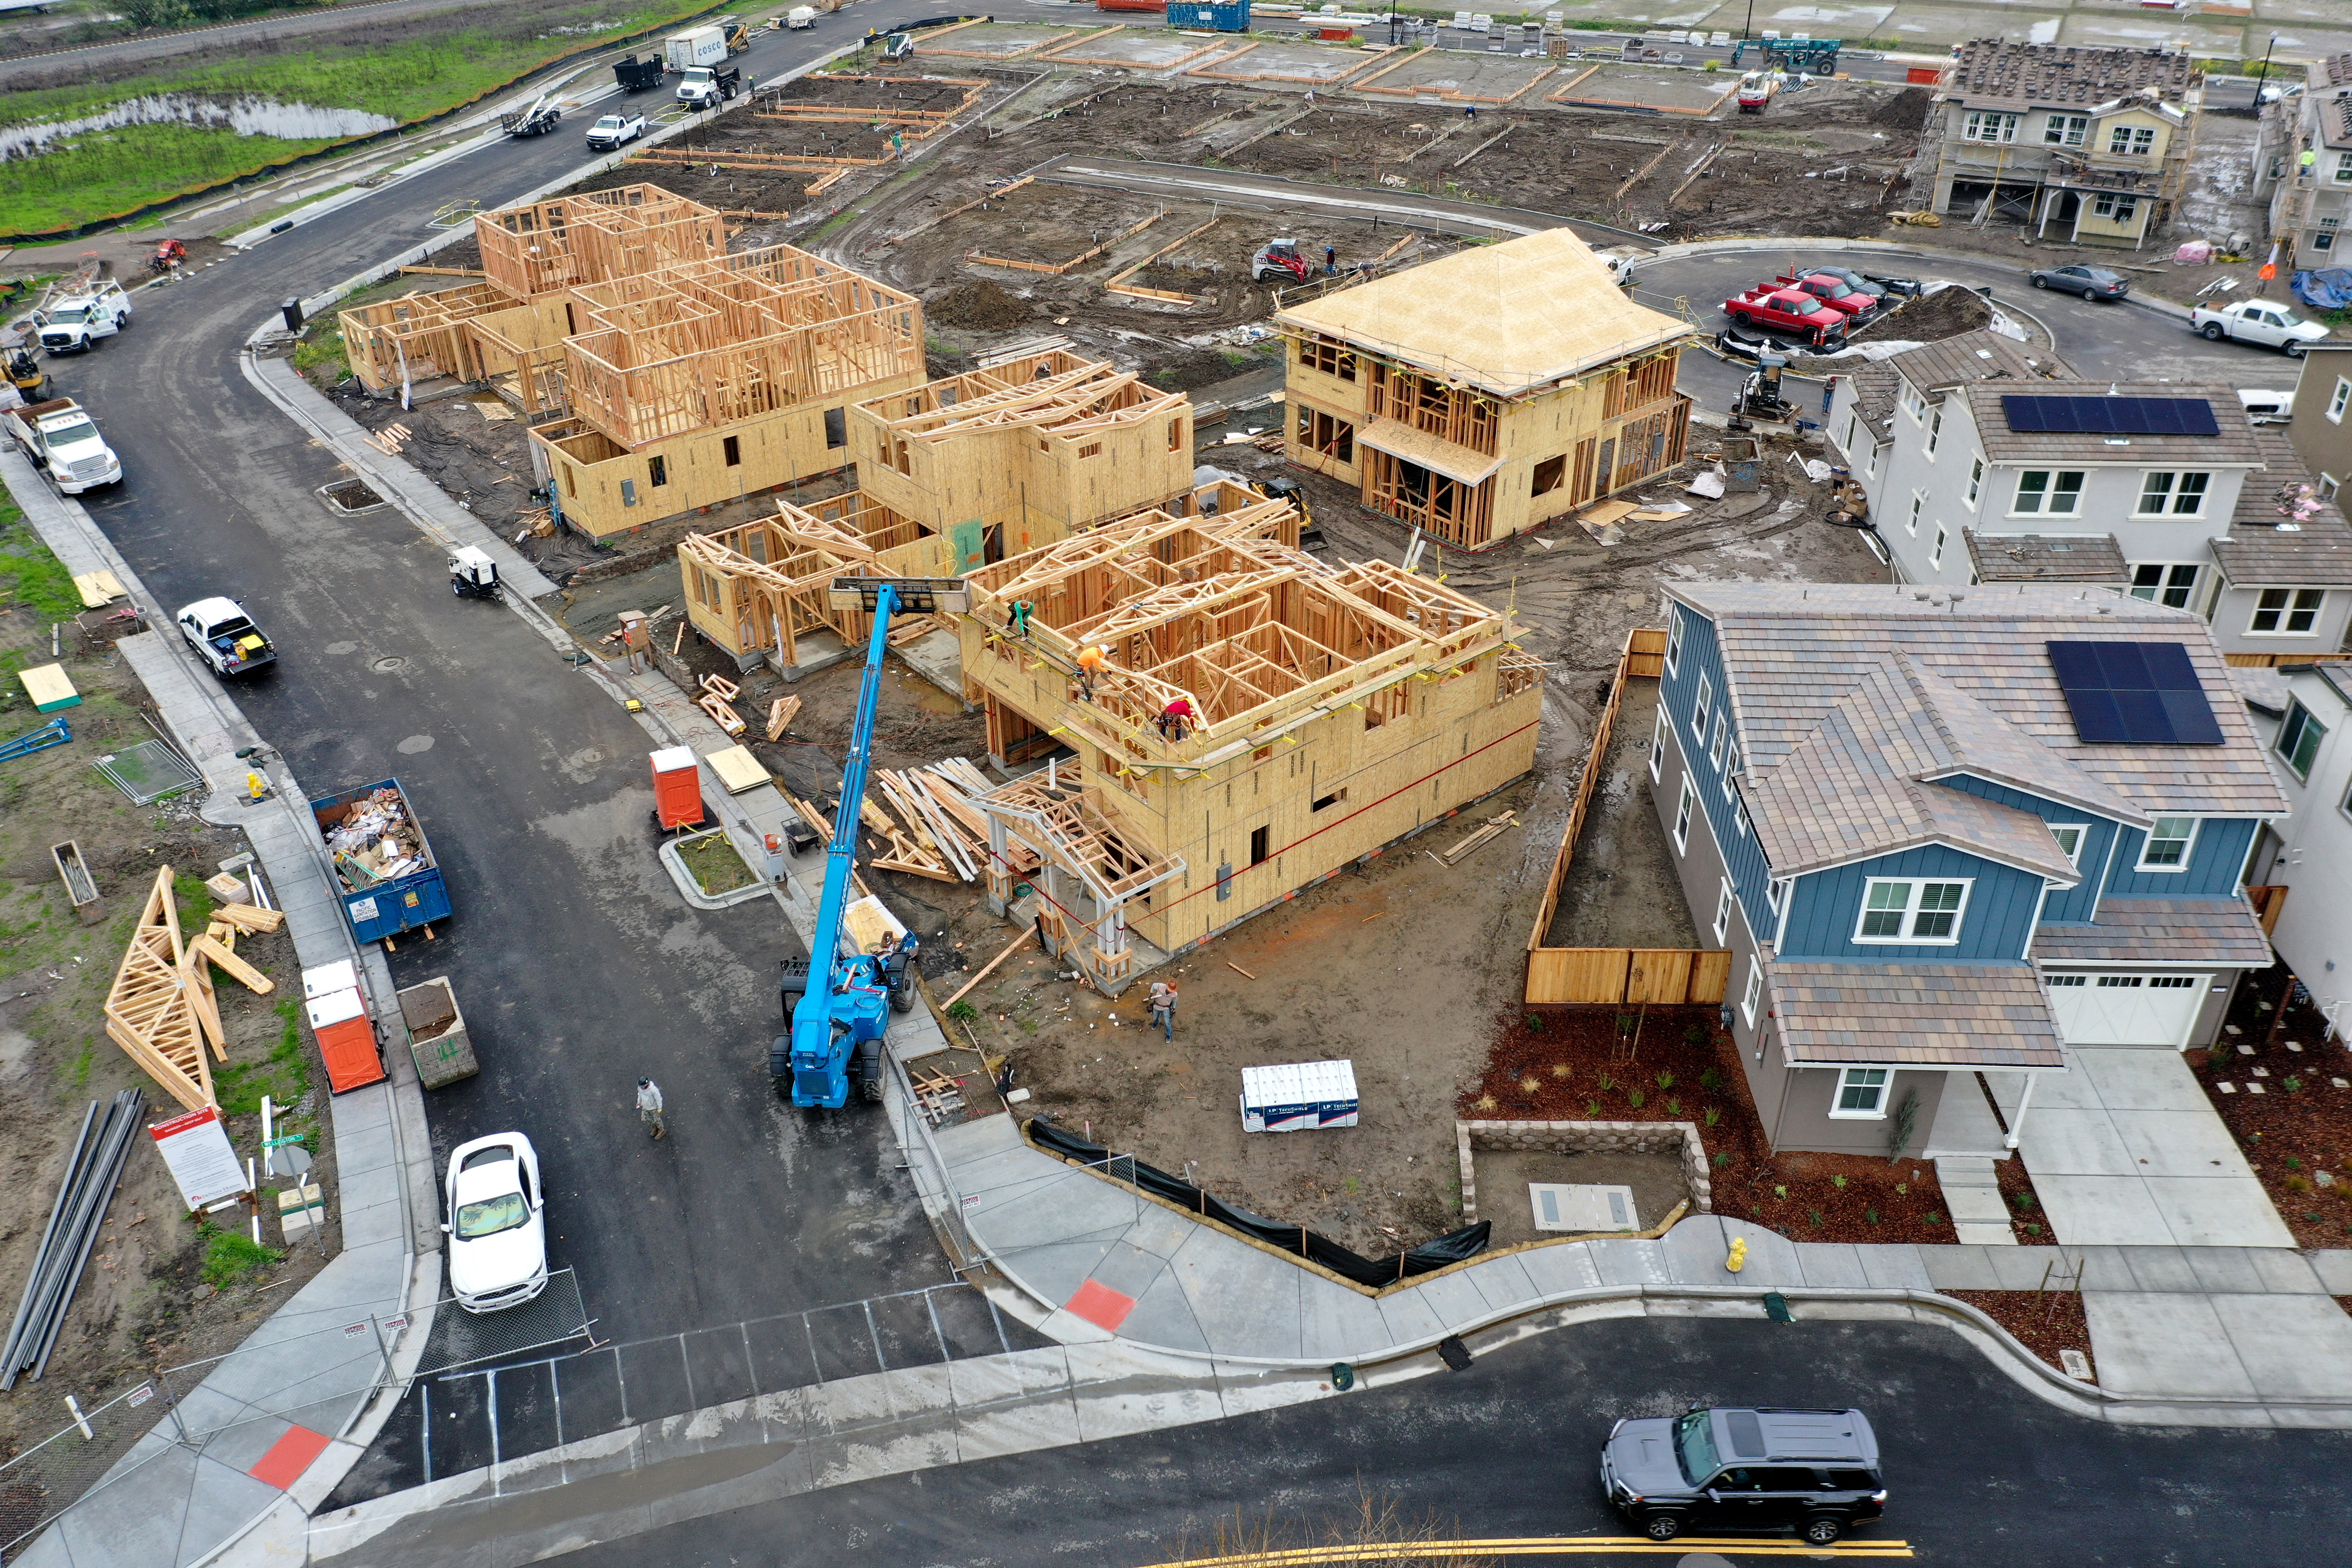 An aerial view of homes under construction at a housing development on Jan. 31, 2019, in Petaluma, California. (Credit: Justin Sullivan/Getty Images)